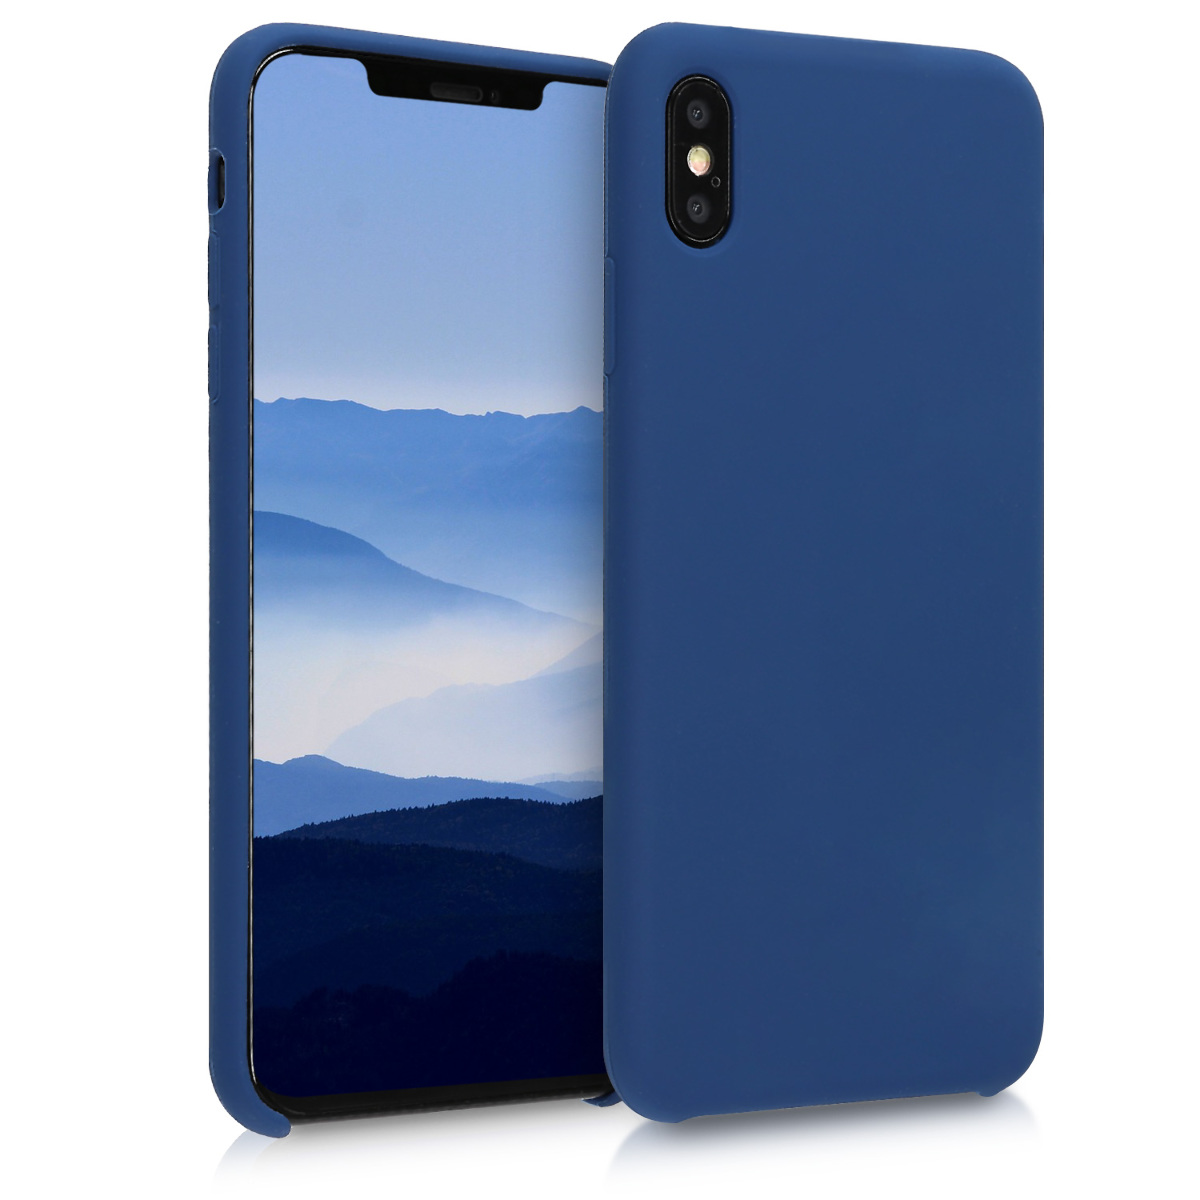 KW Θήκη Σιλικόνης iPhone XS Max - Soft Flexible Rubber Protective Cover - Navy Blue - (45909.116)